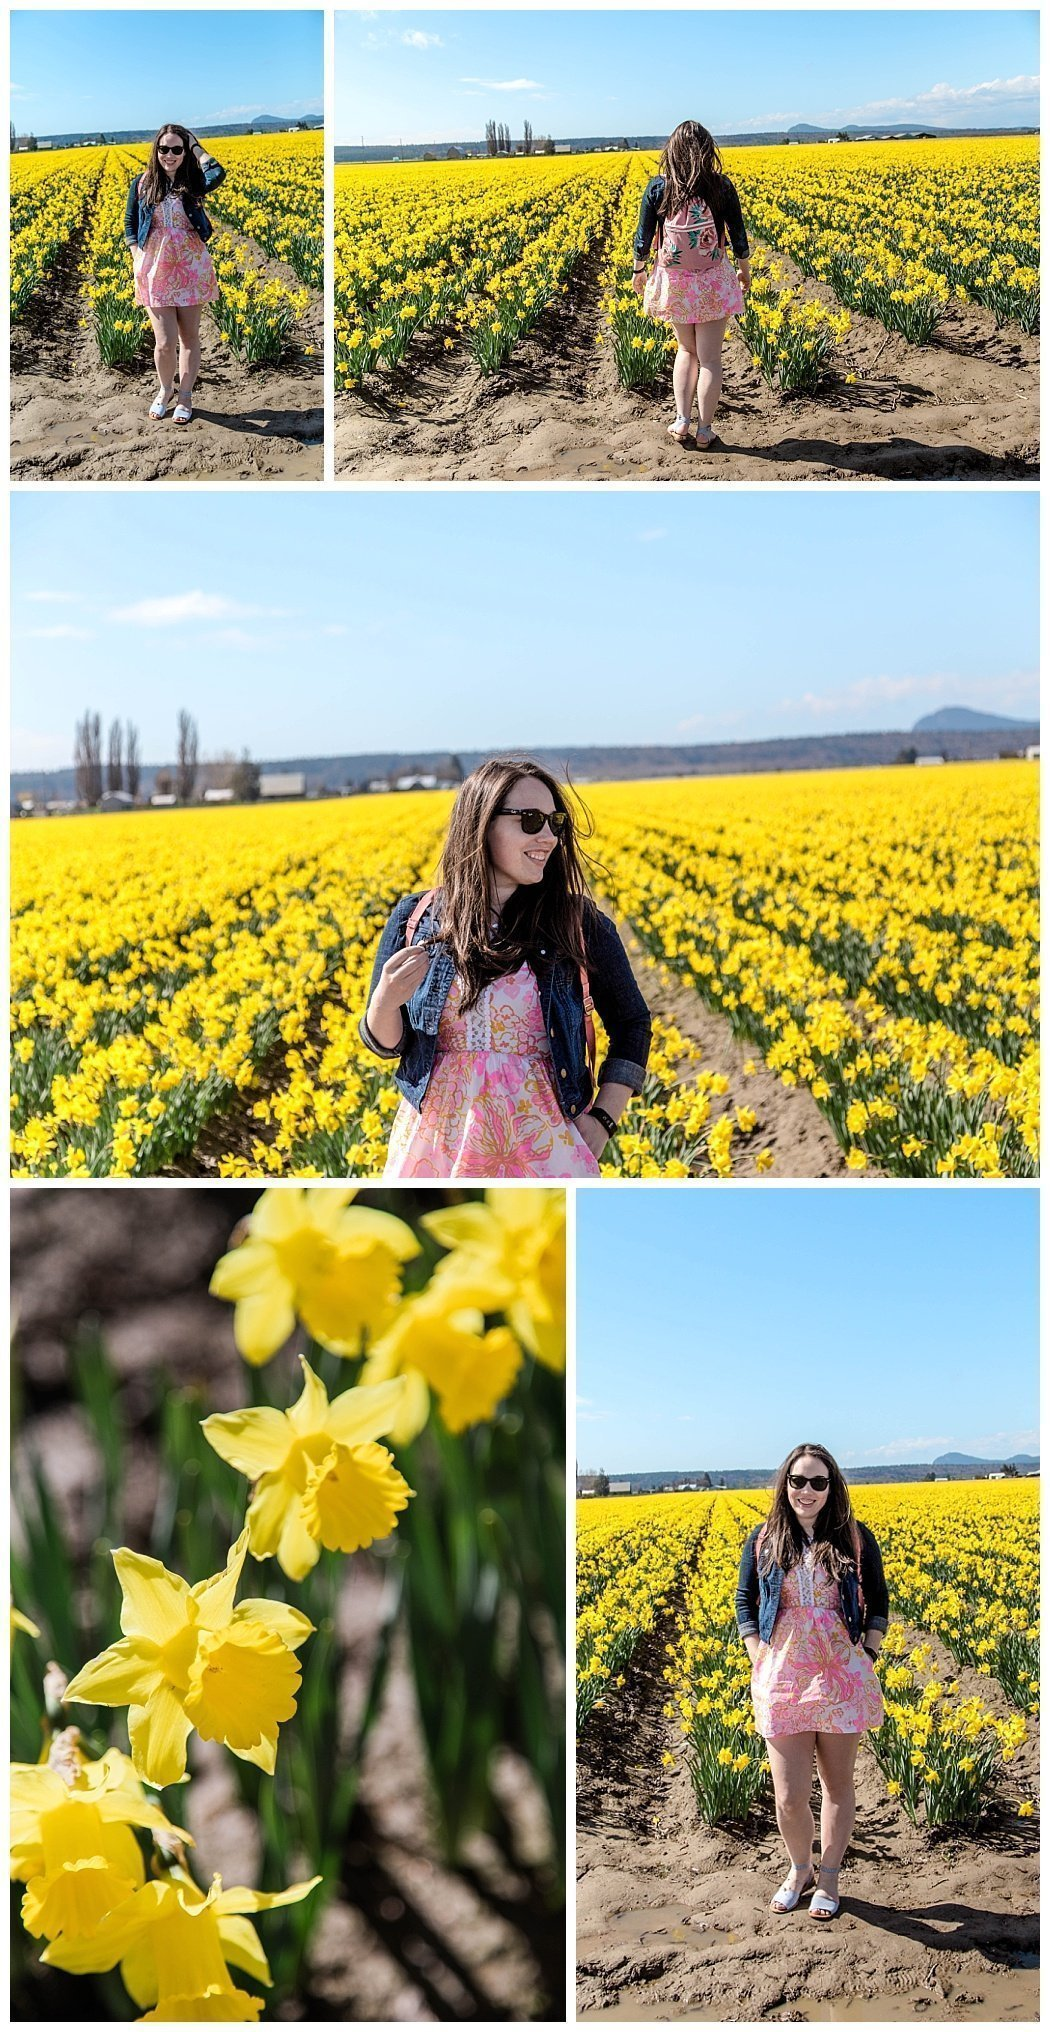 daffodils and brunette woman wearing spring dress